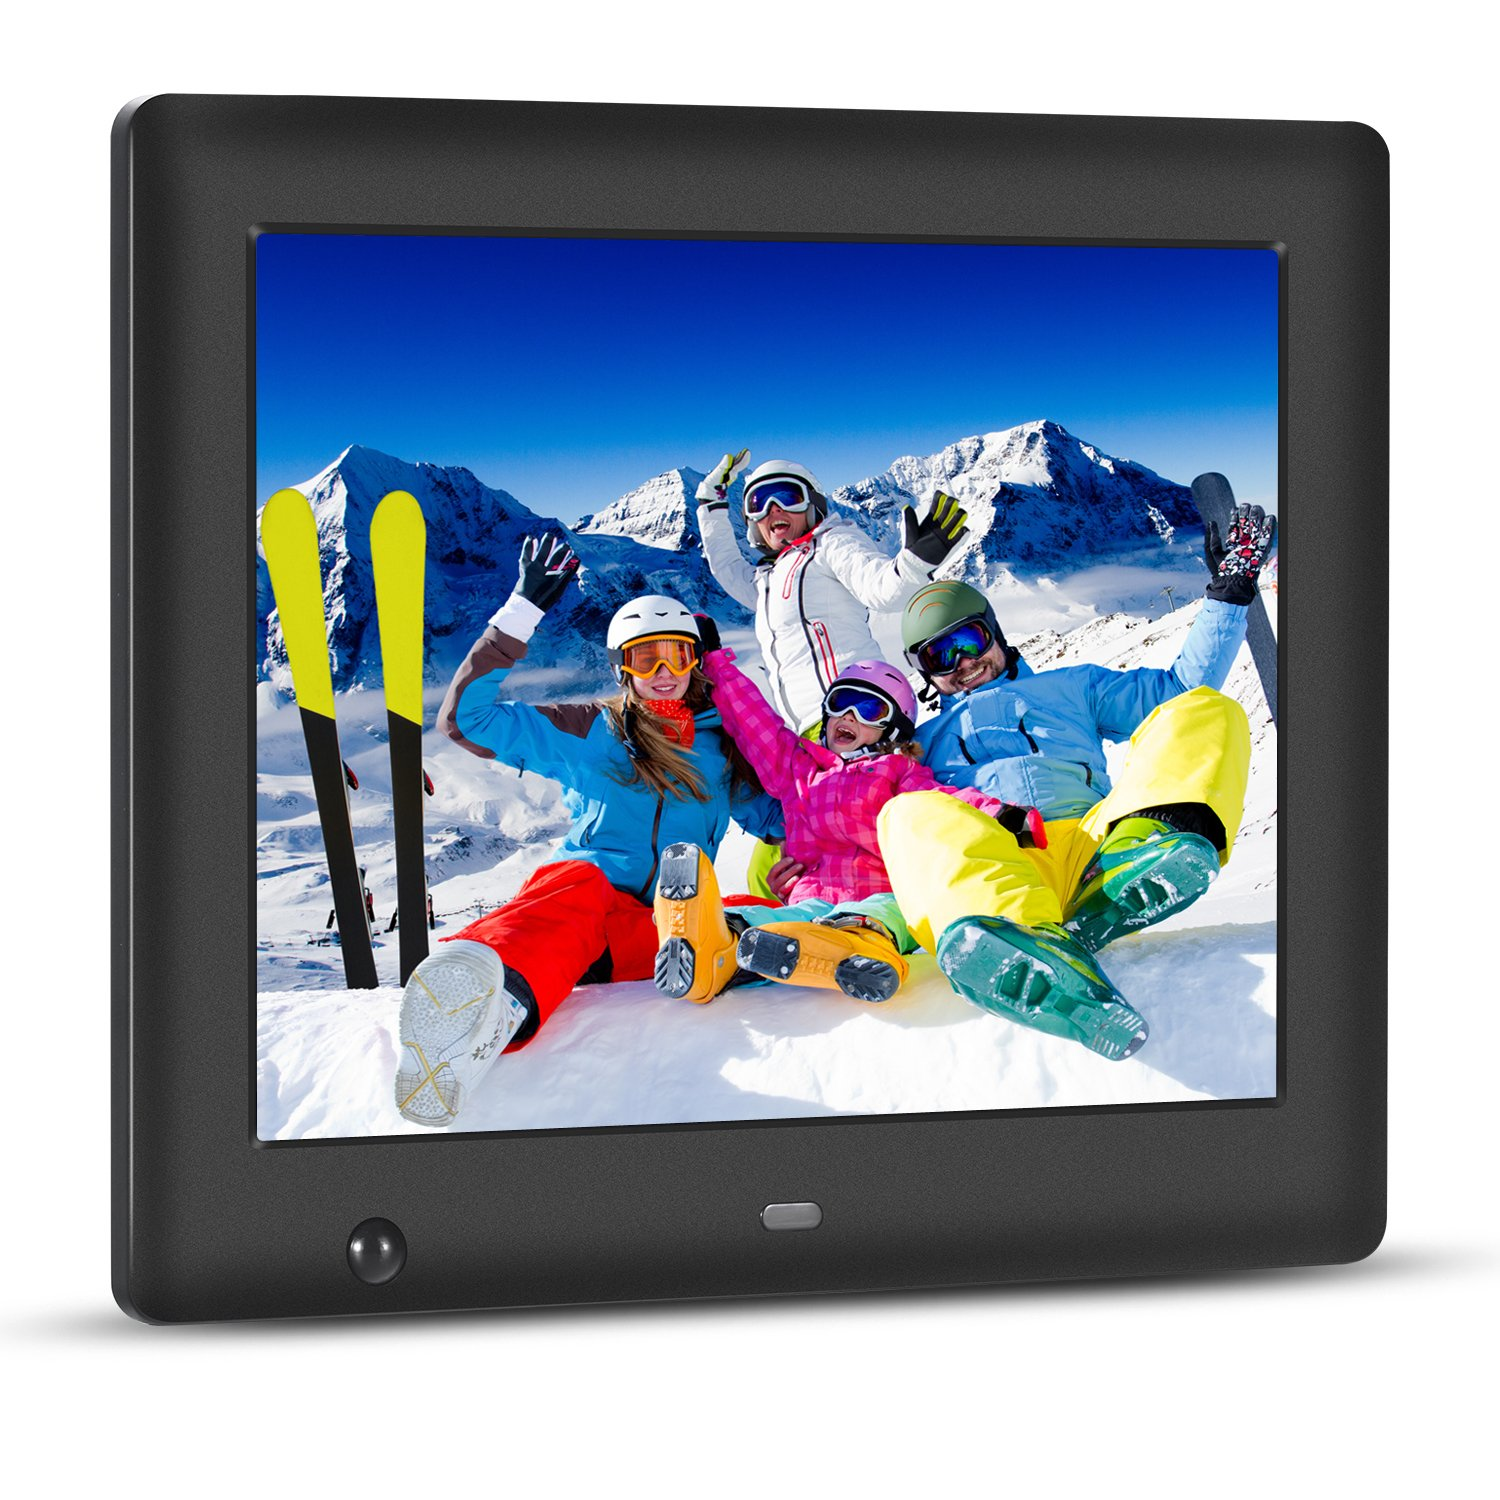 Apzka 8-Inch HD Digital Photo Frame with Motion Sensor, MP3 Photo Video & Music Playback, Calendar with 2GB Internal Memory & Remote Control (Black), by Apzka (Image #1)